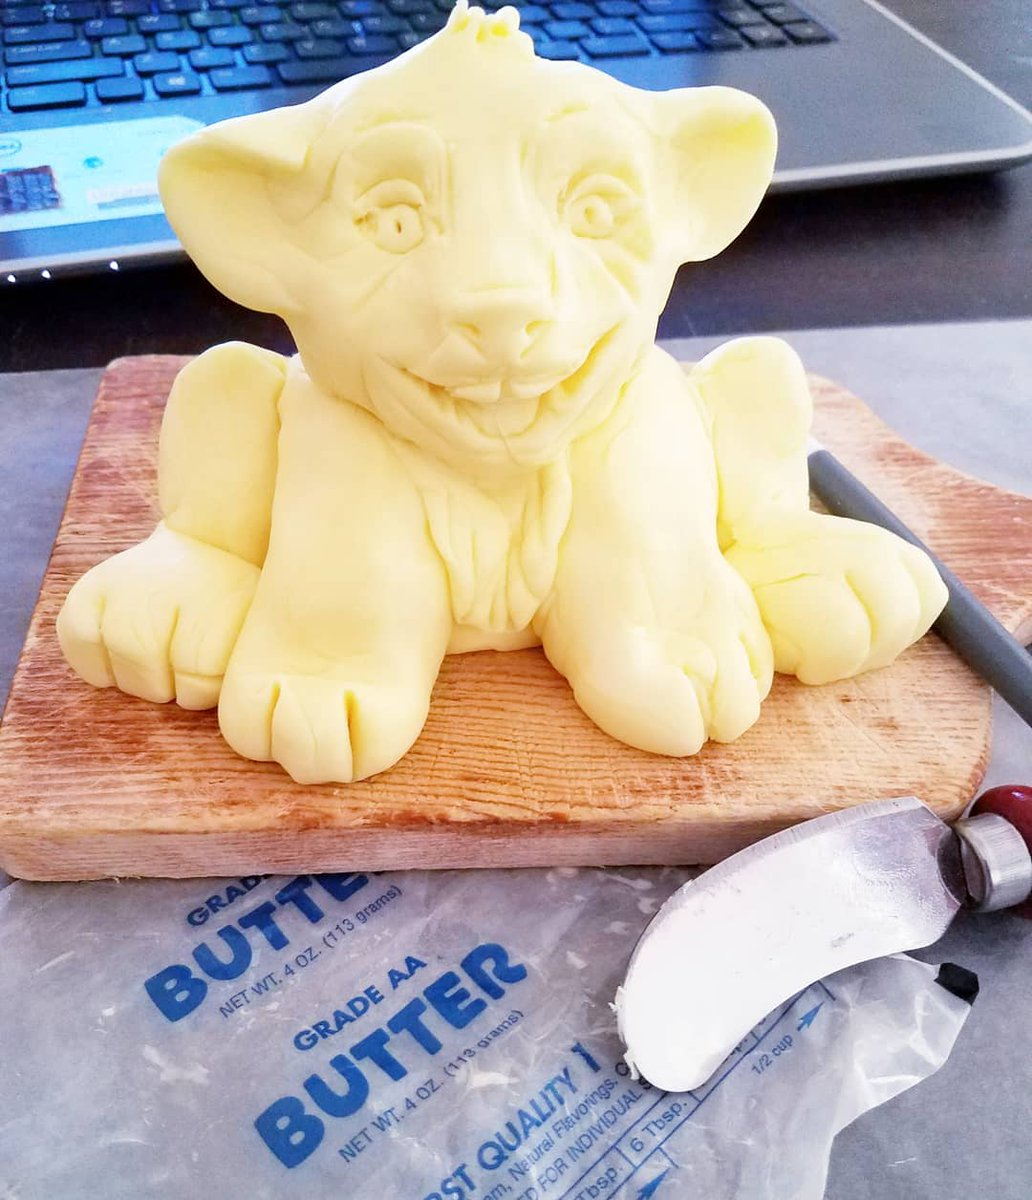 The first is the 14 min sculpt of Simba for @arizonatheatre's 'Nail's It' Butter Sculpt Challenge... the last is after like 20 more miniutes sculpting plus a wine break & putting it in the fridge for said wine break... now I need to make cookies #ATCNailsIt #somuchbutter https://t.co/MSuU6fNnei